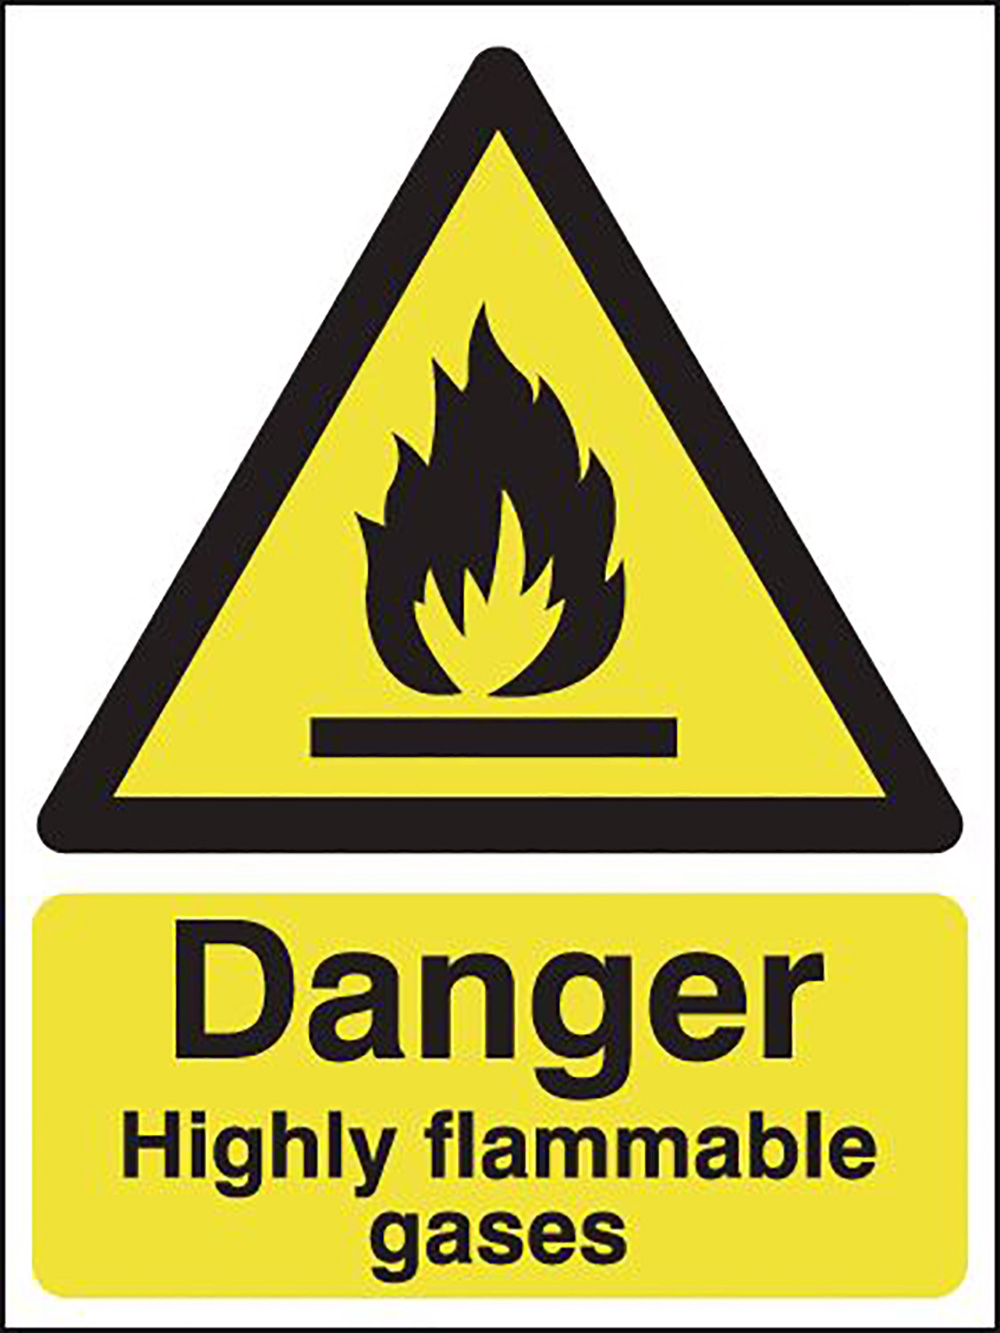 Danger Highly Flammable Gases 297x210mm 1.2mm Rigid Plastic Safety Sign